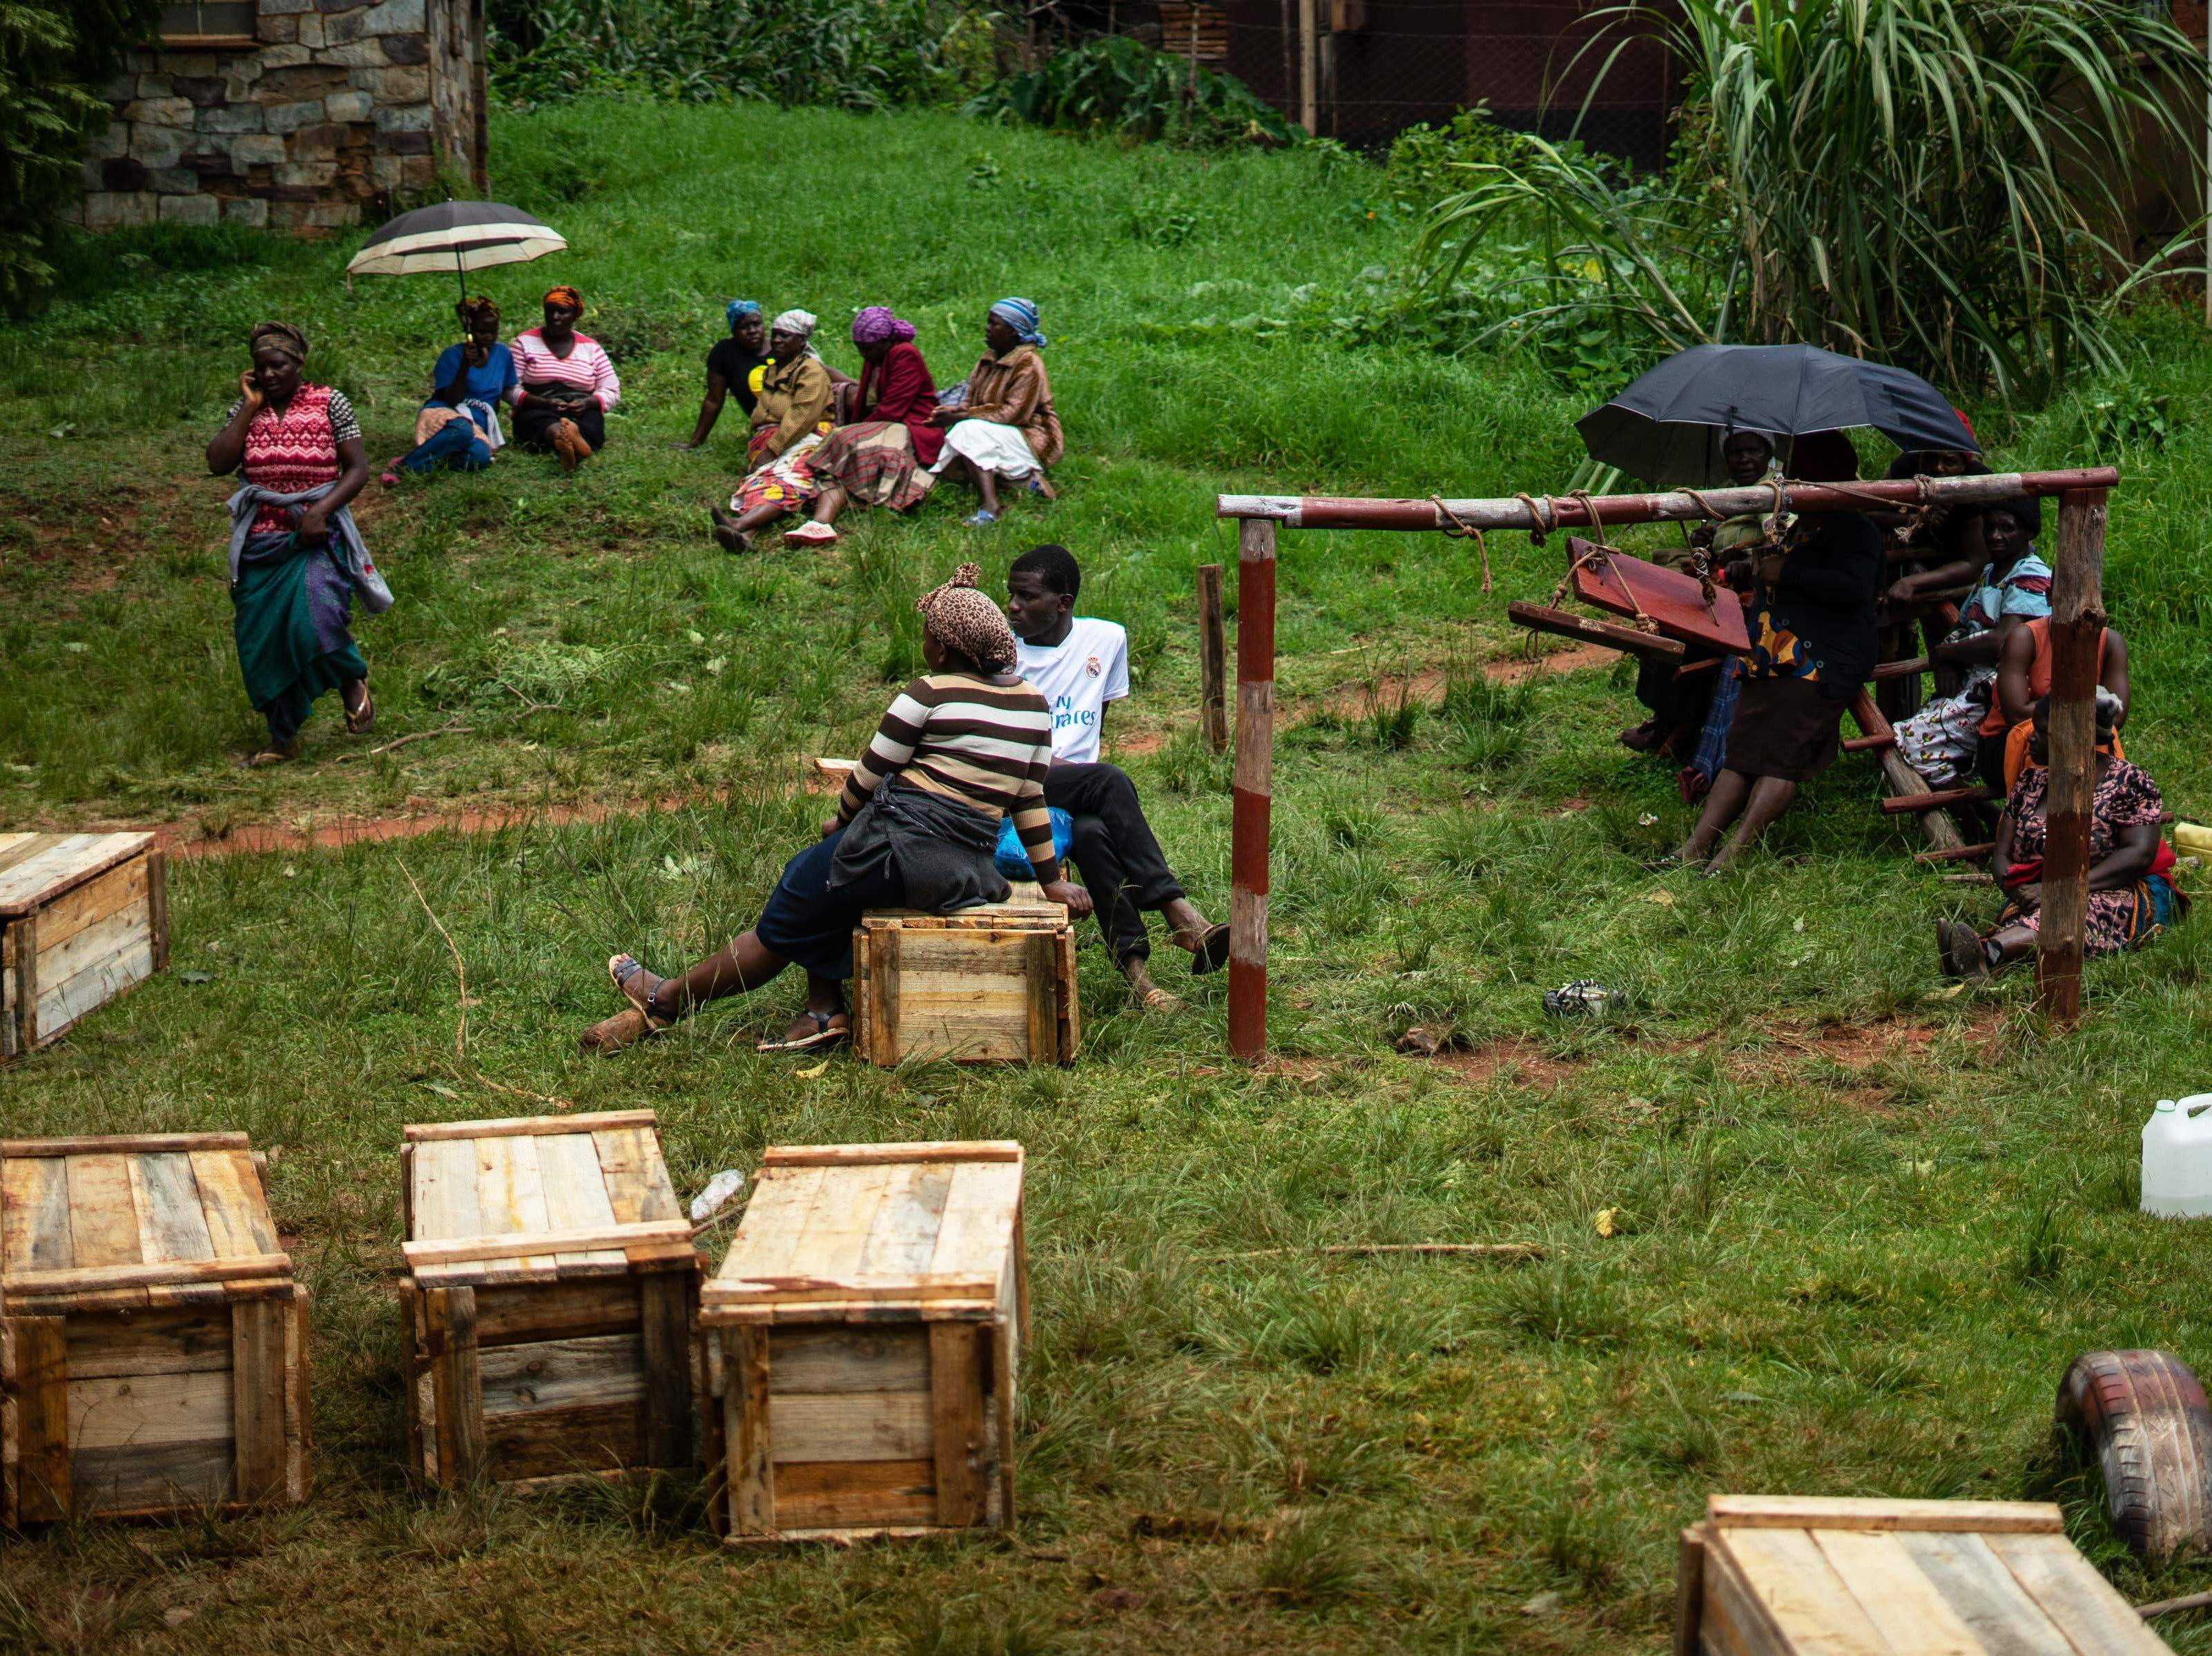 Relatives sit beside their family members' coffins outside St. Thomas Catholic Church in Chimanimani, Zimbabwe, waiting for transport to the grave site on March 18, 2019.